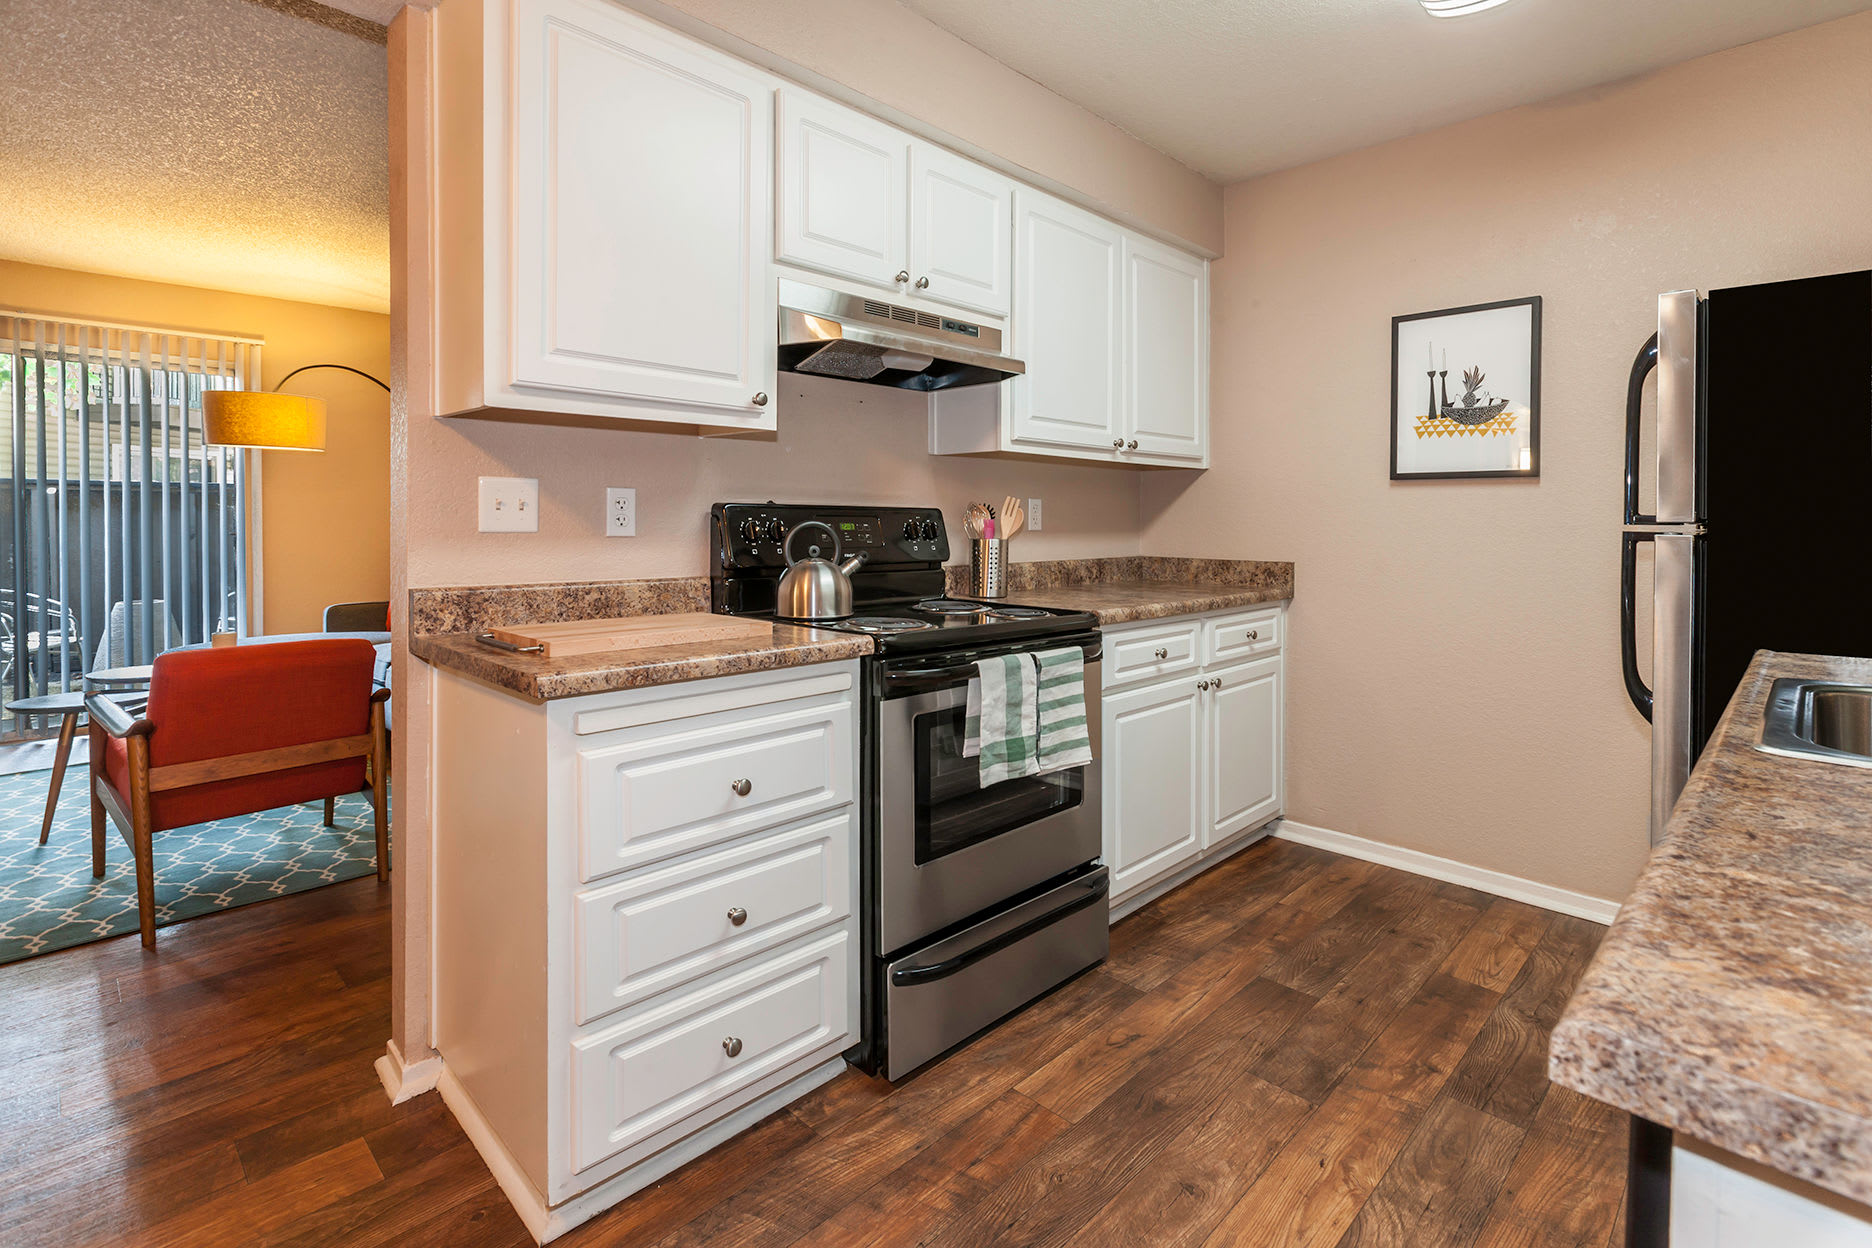 Kitchen and Living Room at The Woodlands Apartments in Sacramento